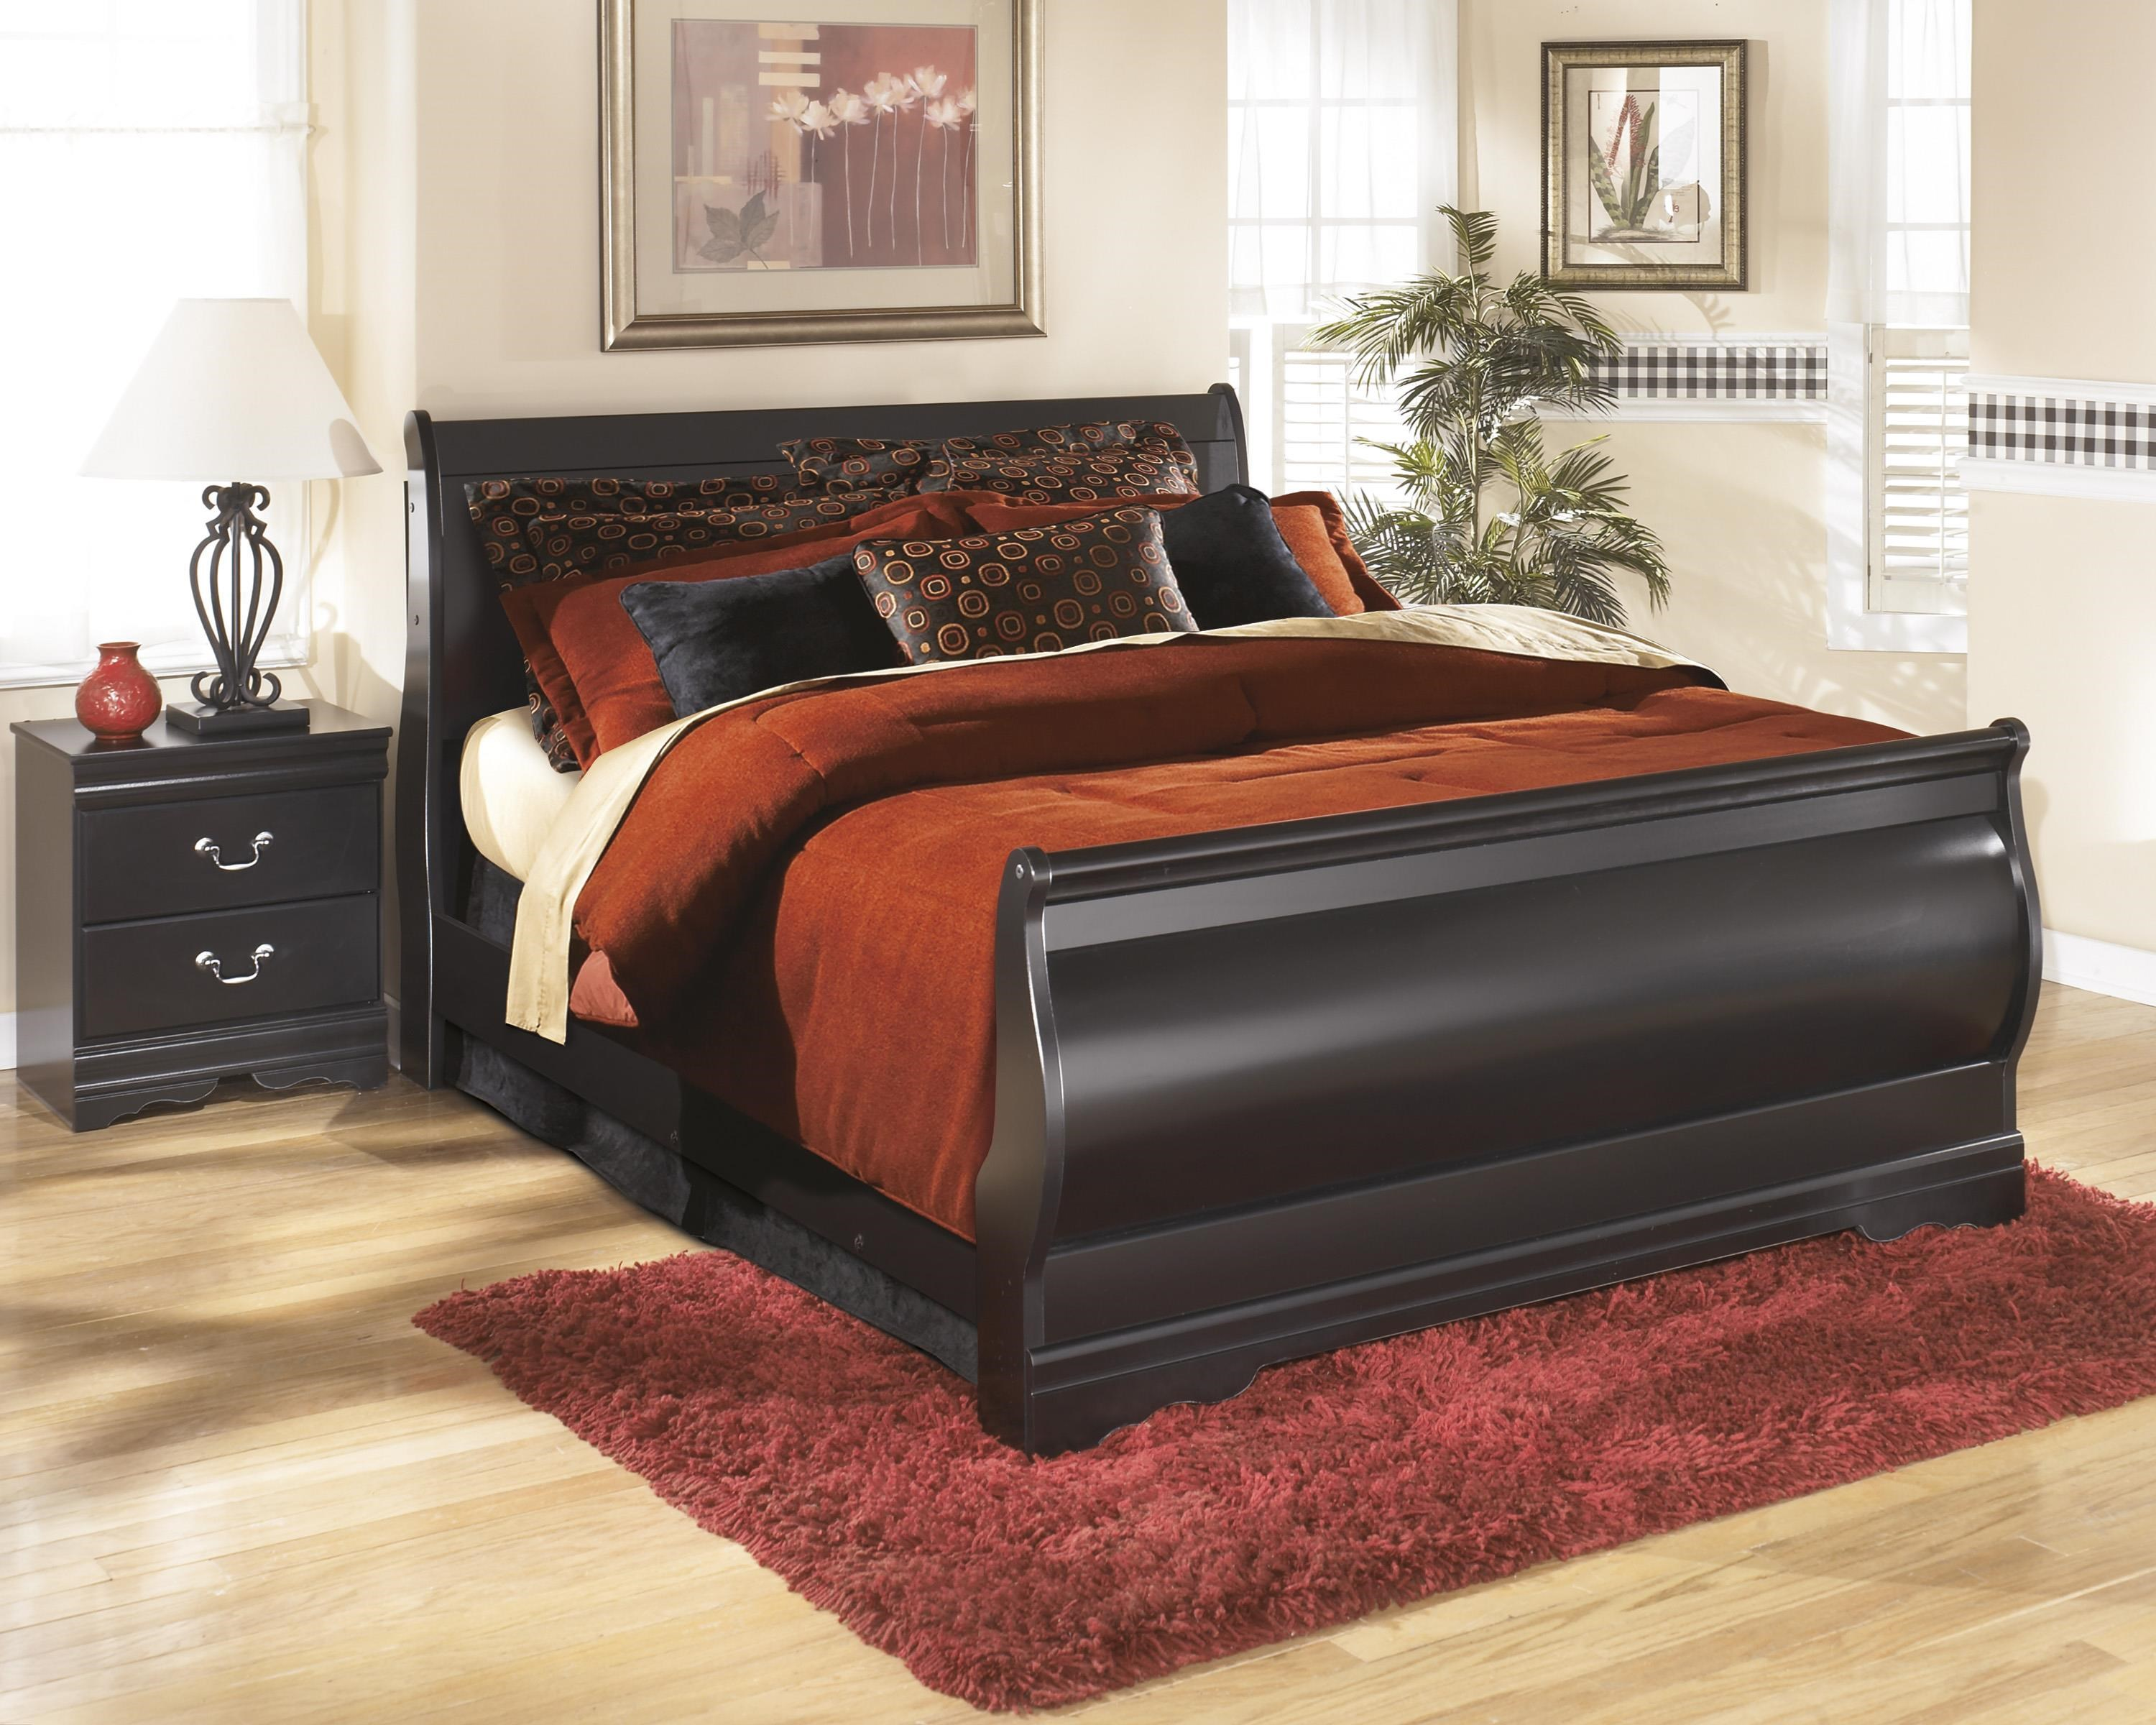 Huey Vineyard Full Sleigh Bed, Nightstand and Chest Packag by Signature Design by Ashley at Sam Levitz Furniture